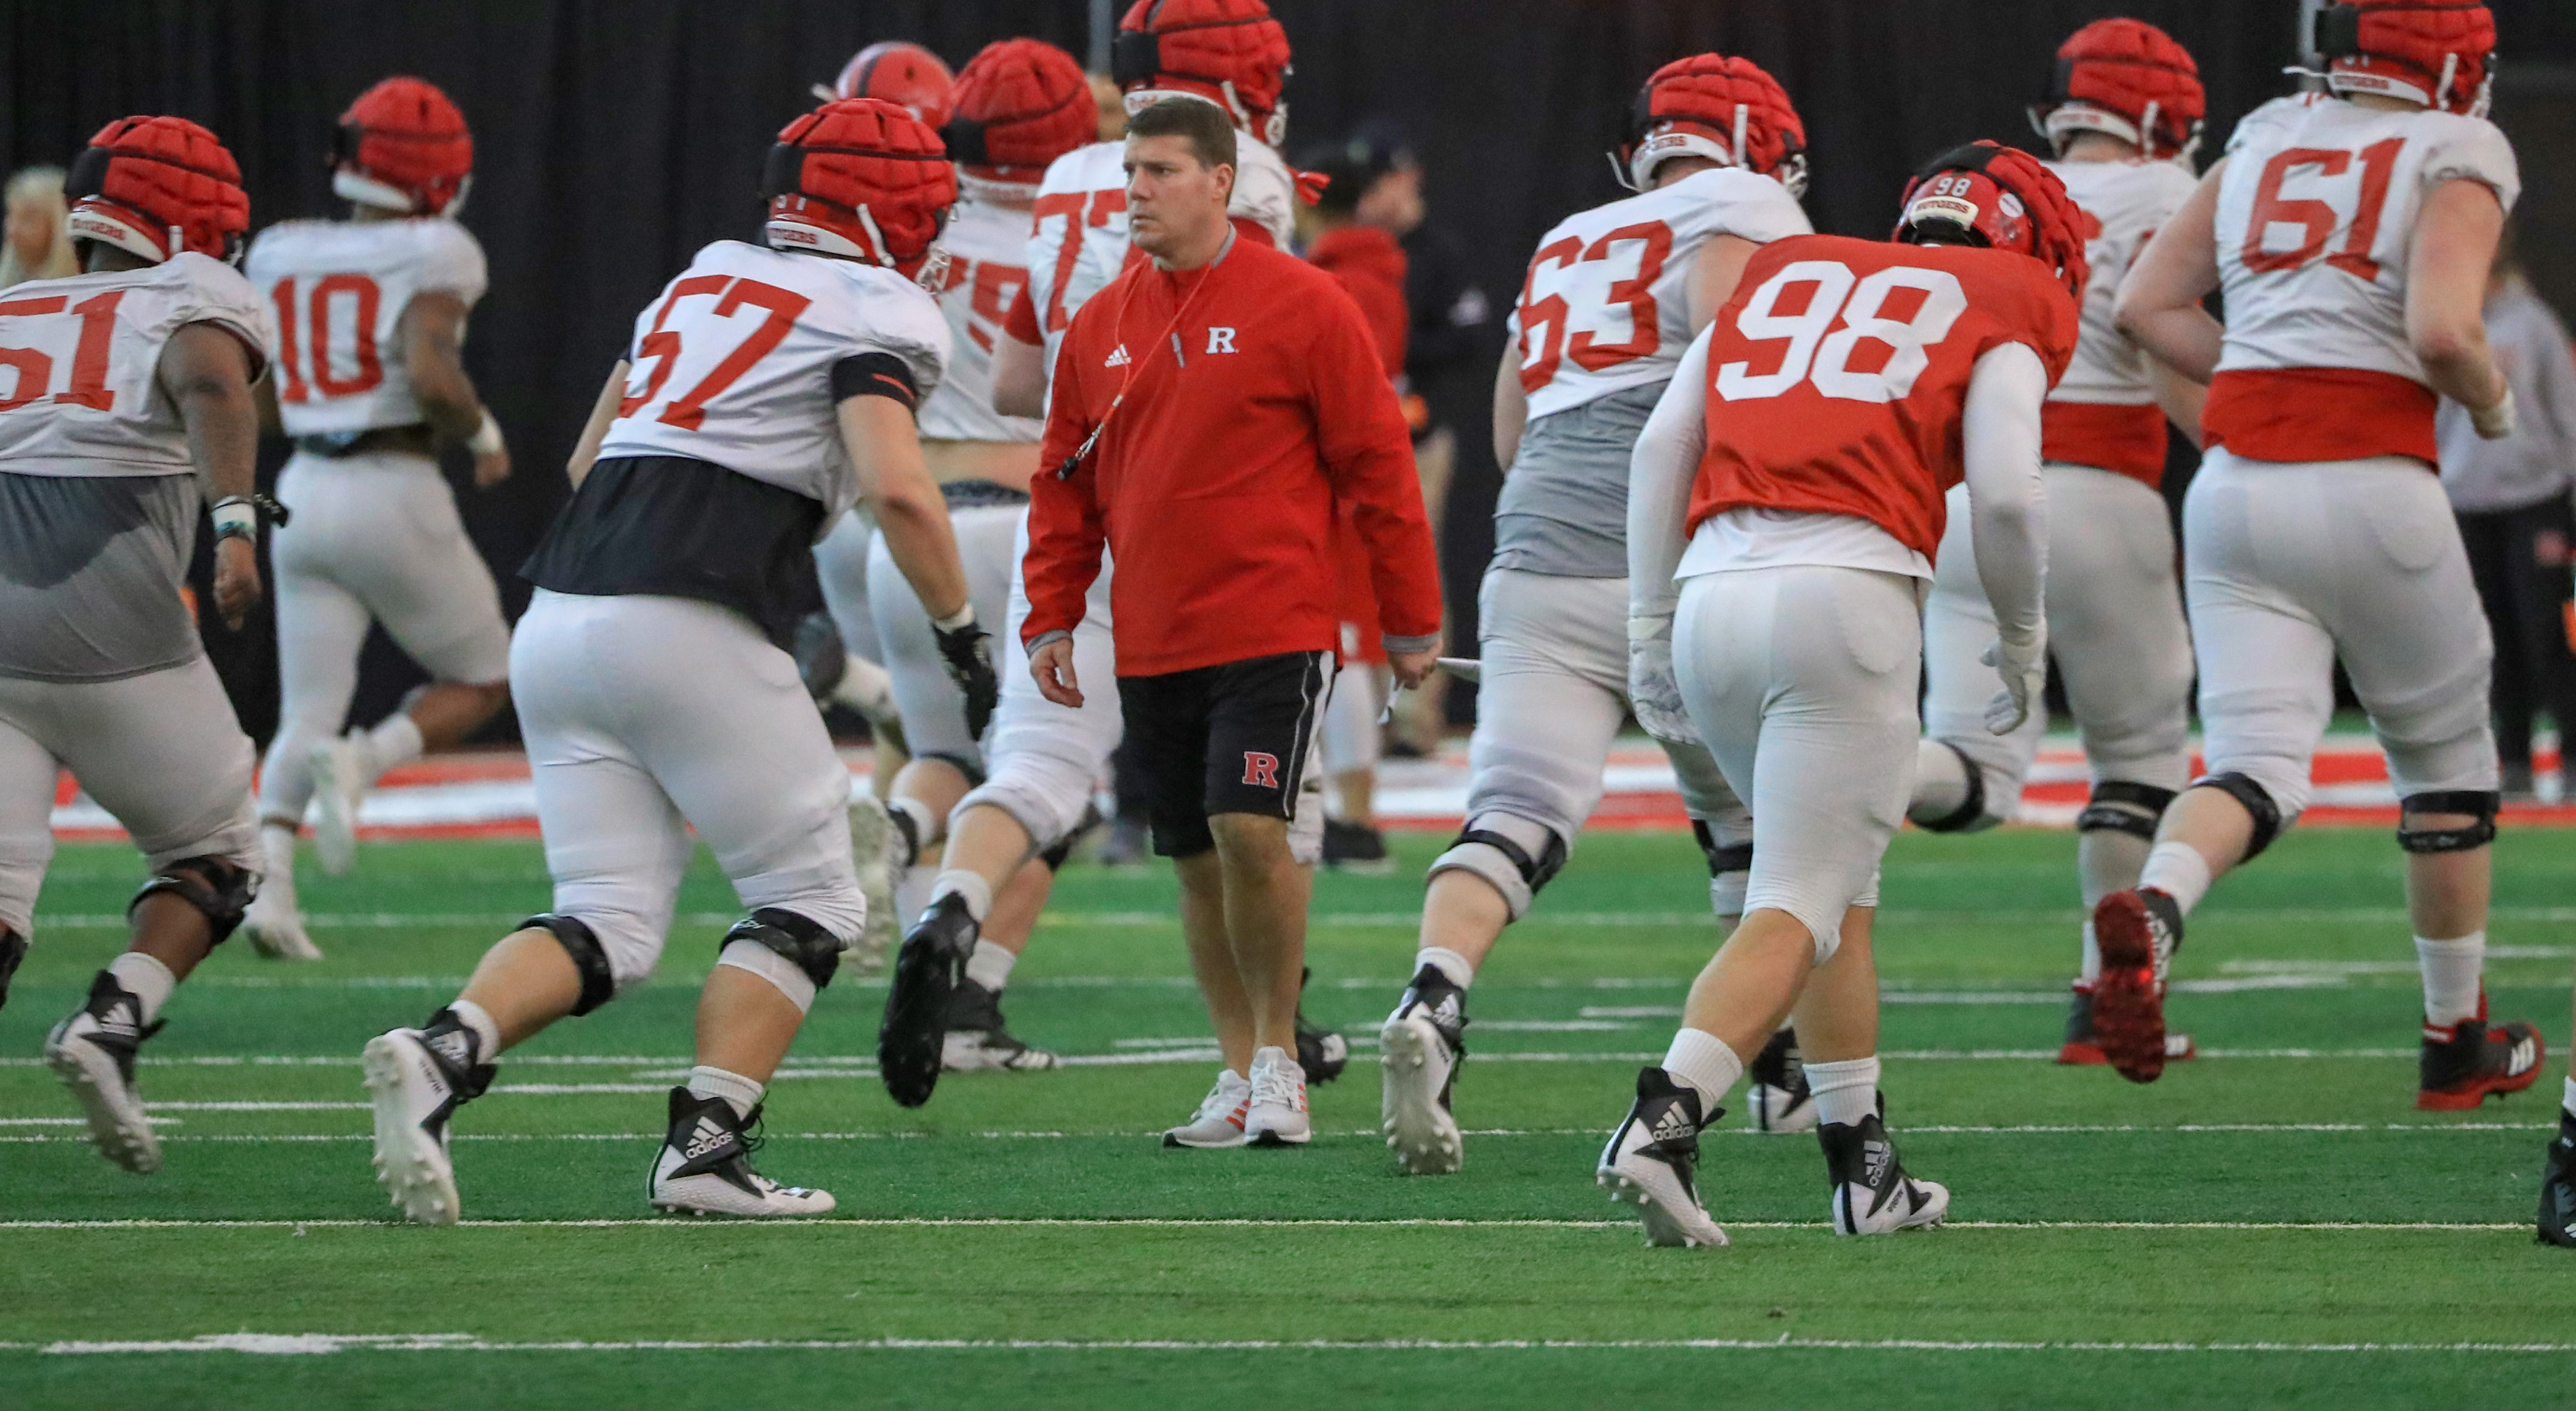 Rutgers Football Schedule 2019 Ranking 12 Games From Easiest To Toughest Nj Com